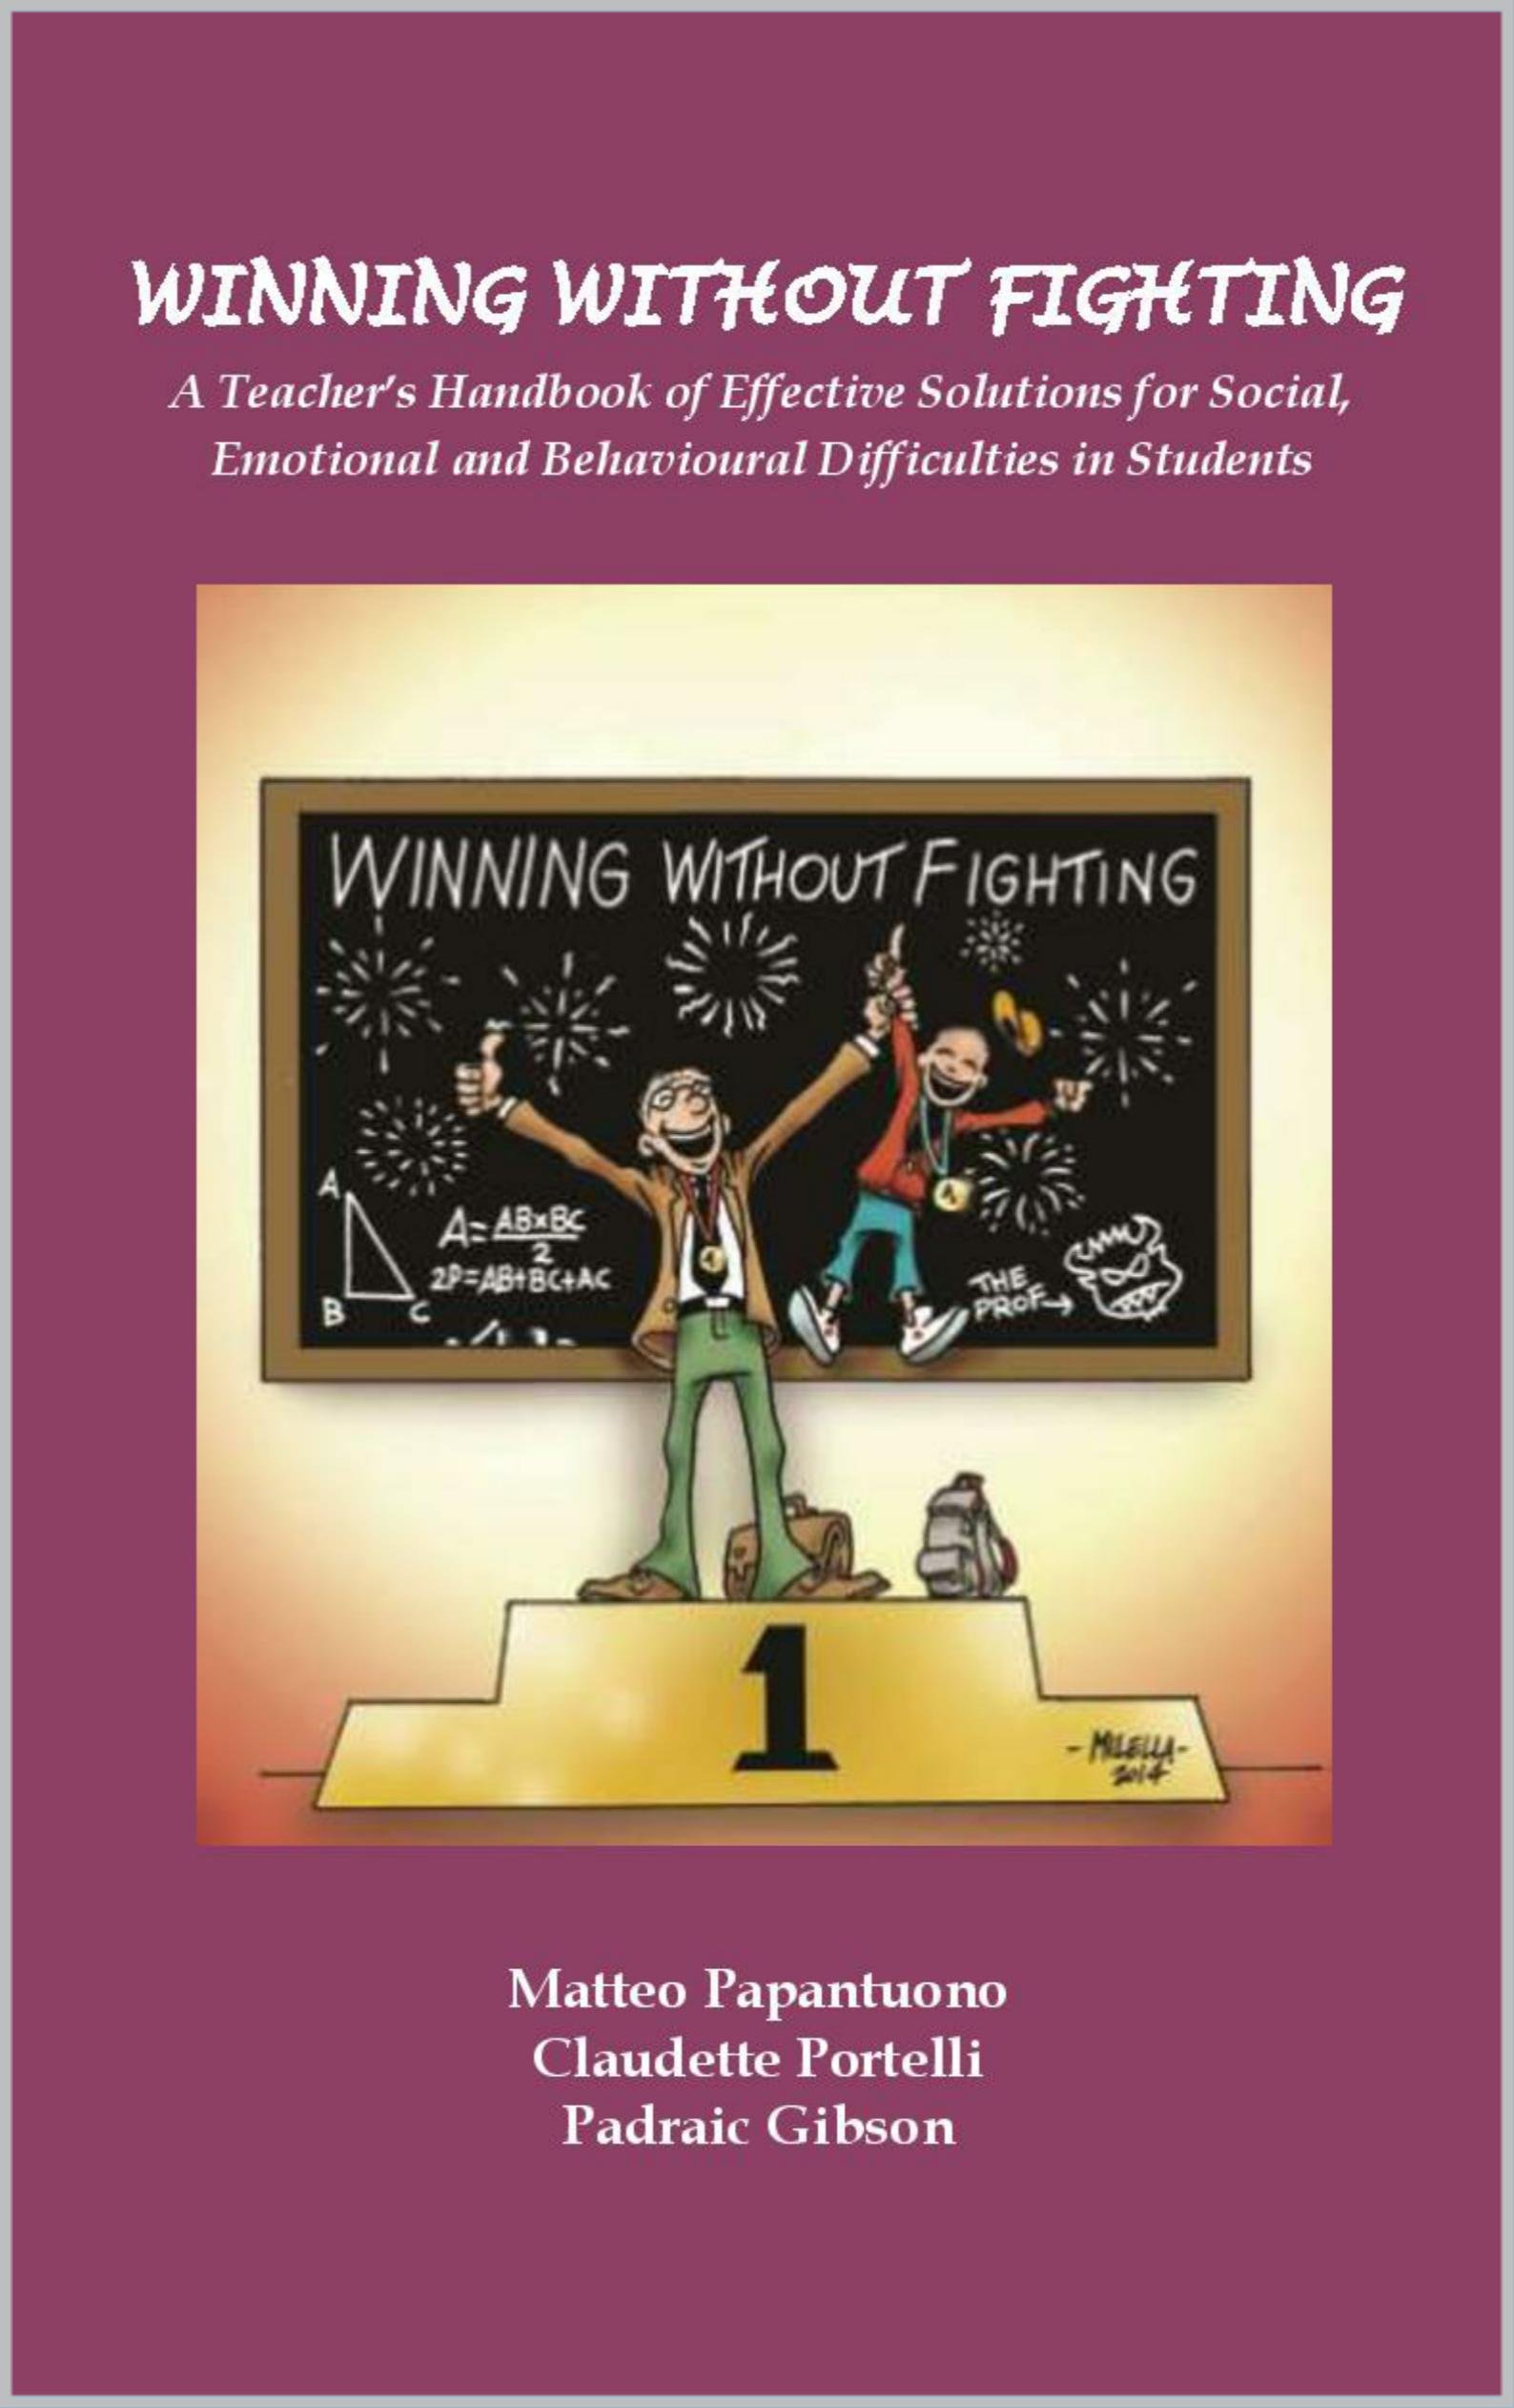 Winning Without Fighting  A Handbook Effective Solutions For Social Emotional And Behavioural Problems In Students  English Edition